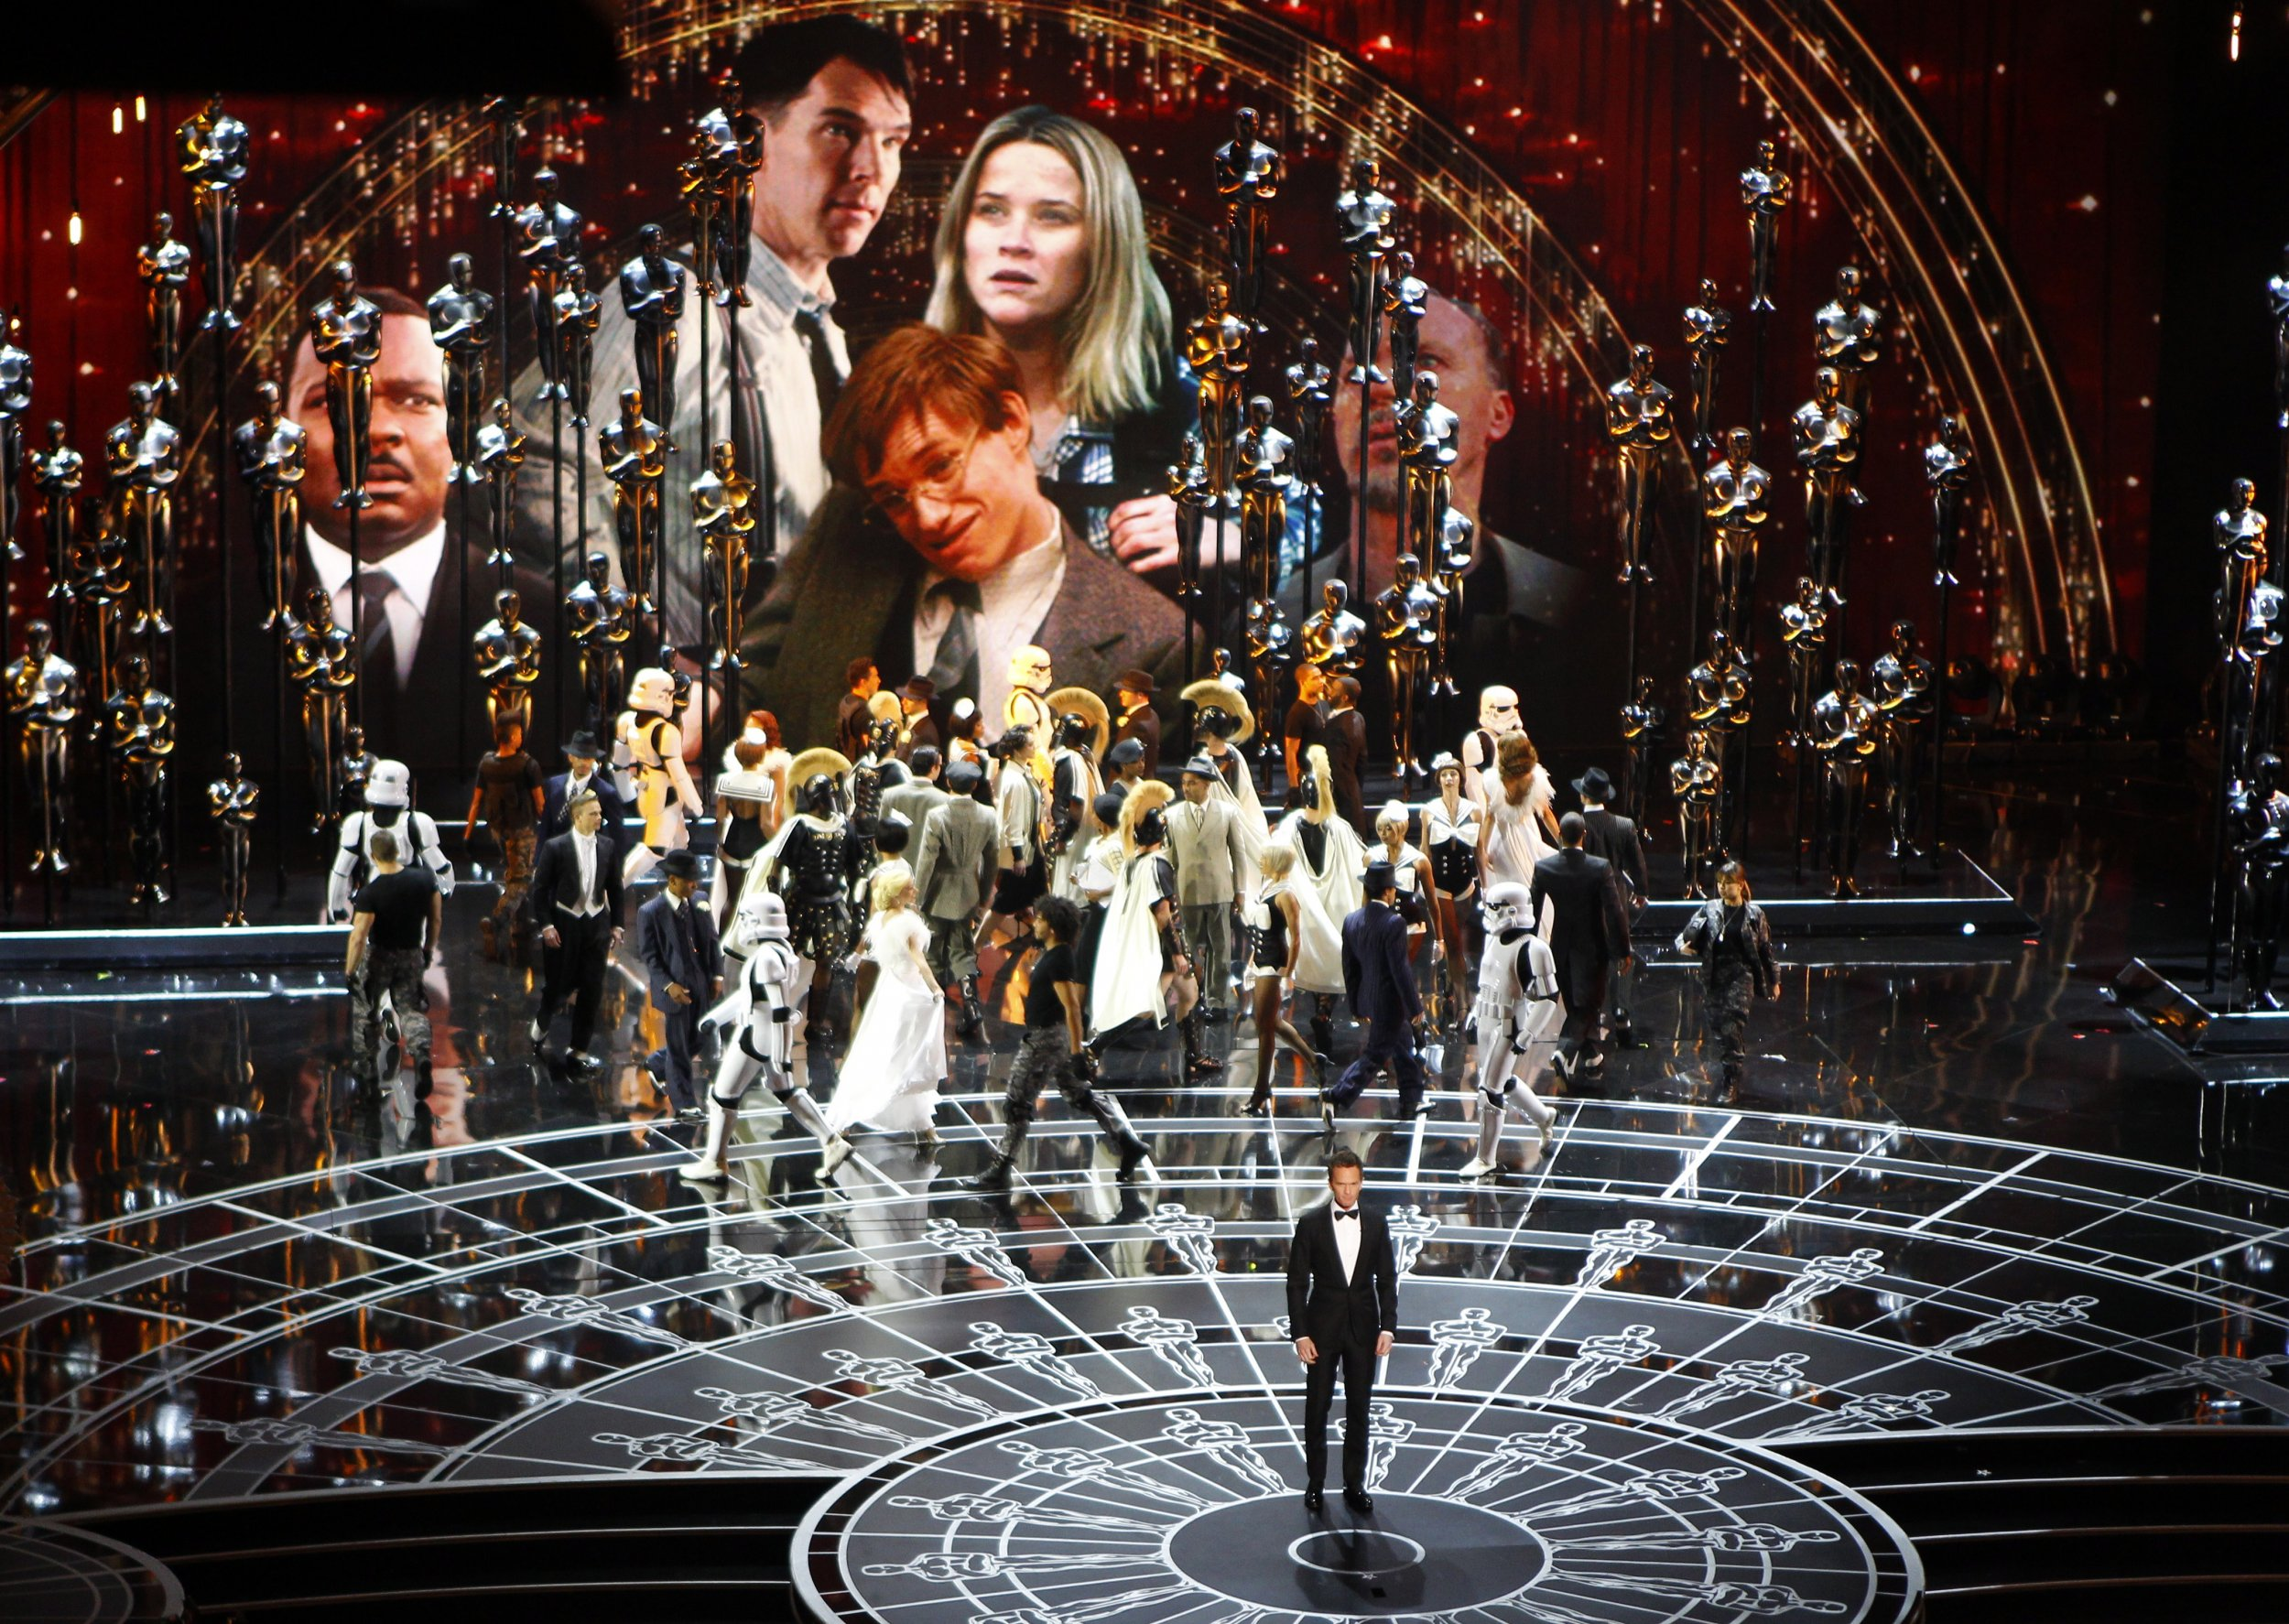 Neil Patrick Harris hosts Academy Awards 2015